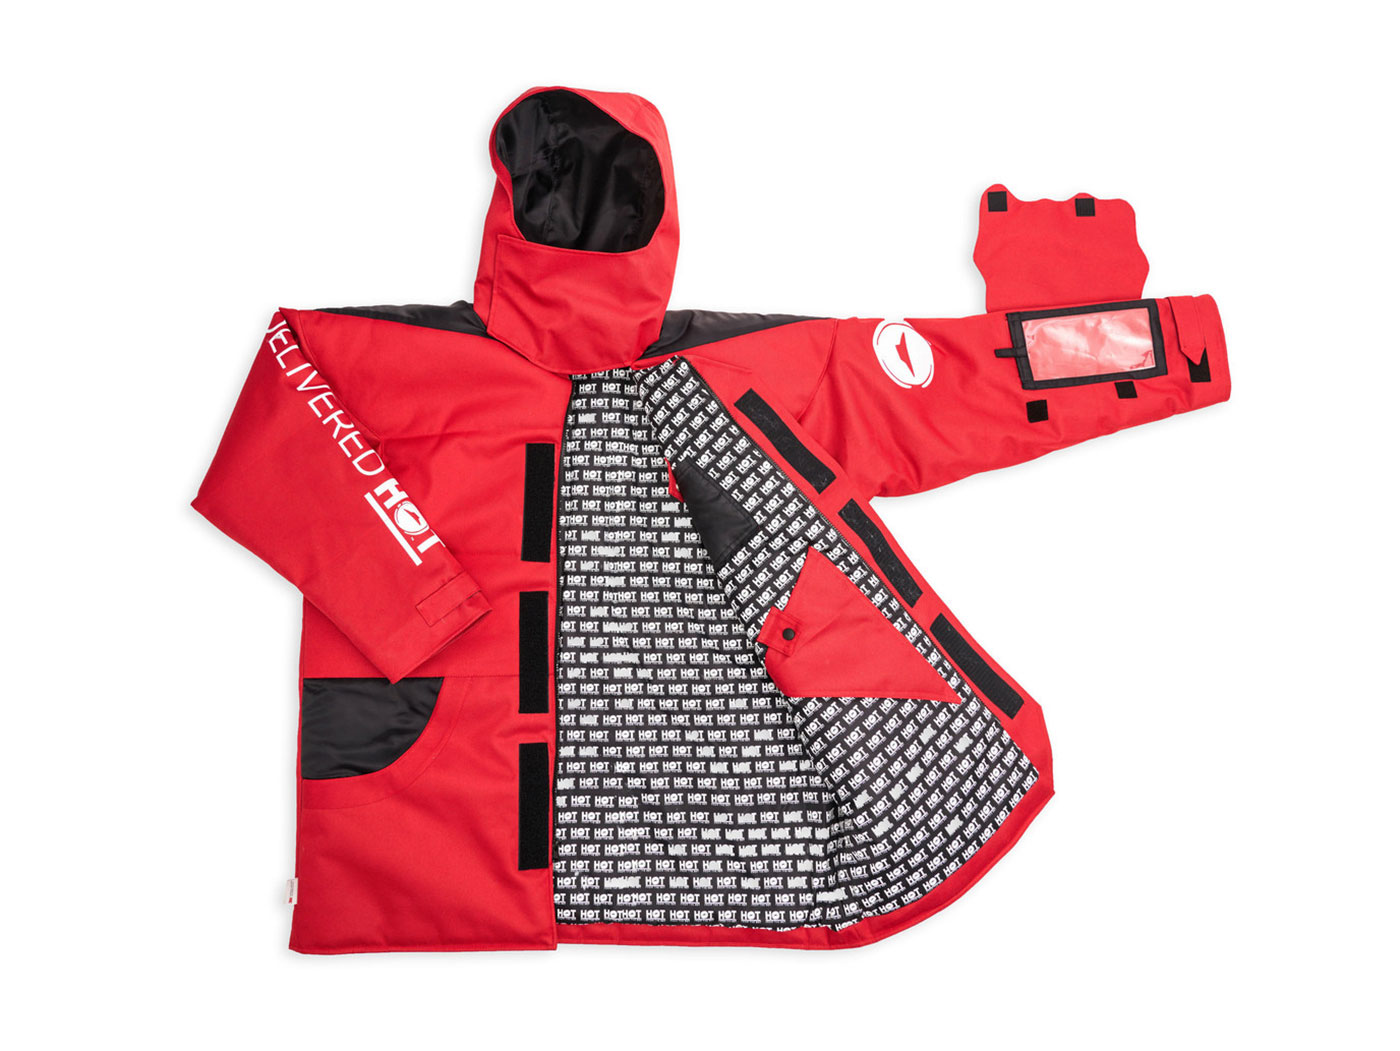 pizza hut designs parka